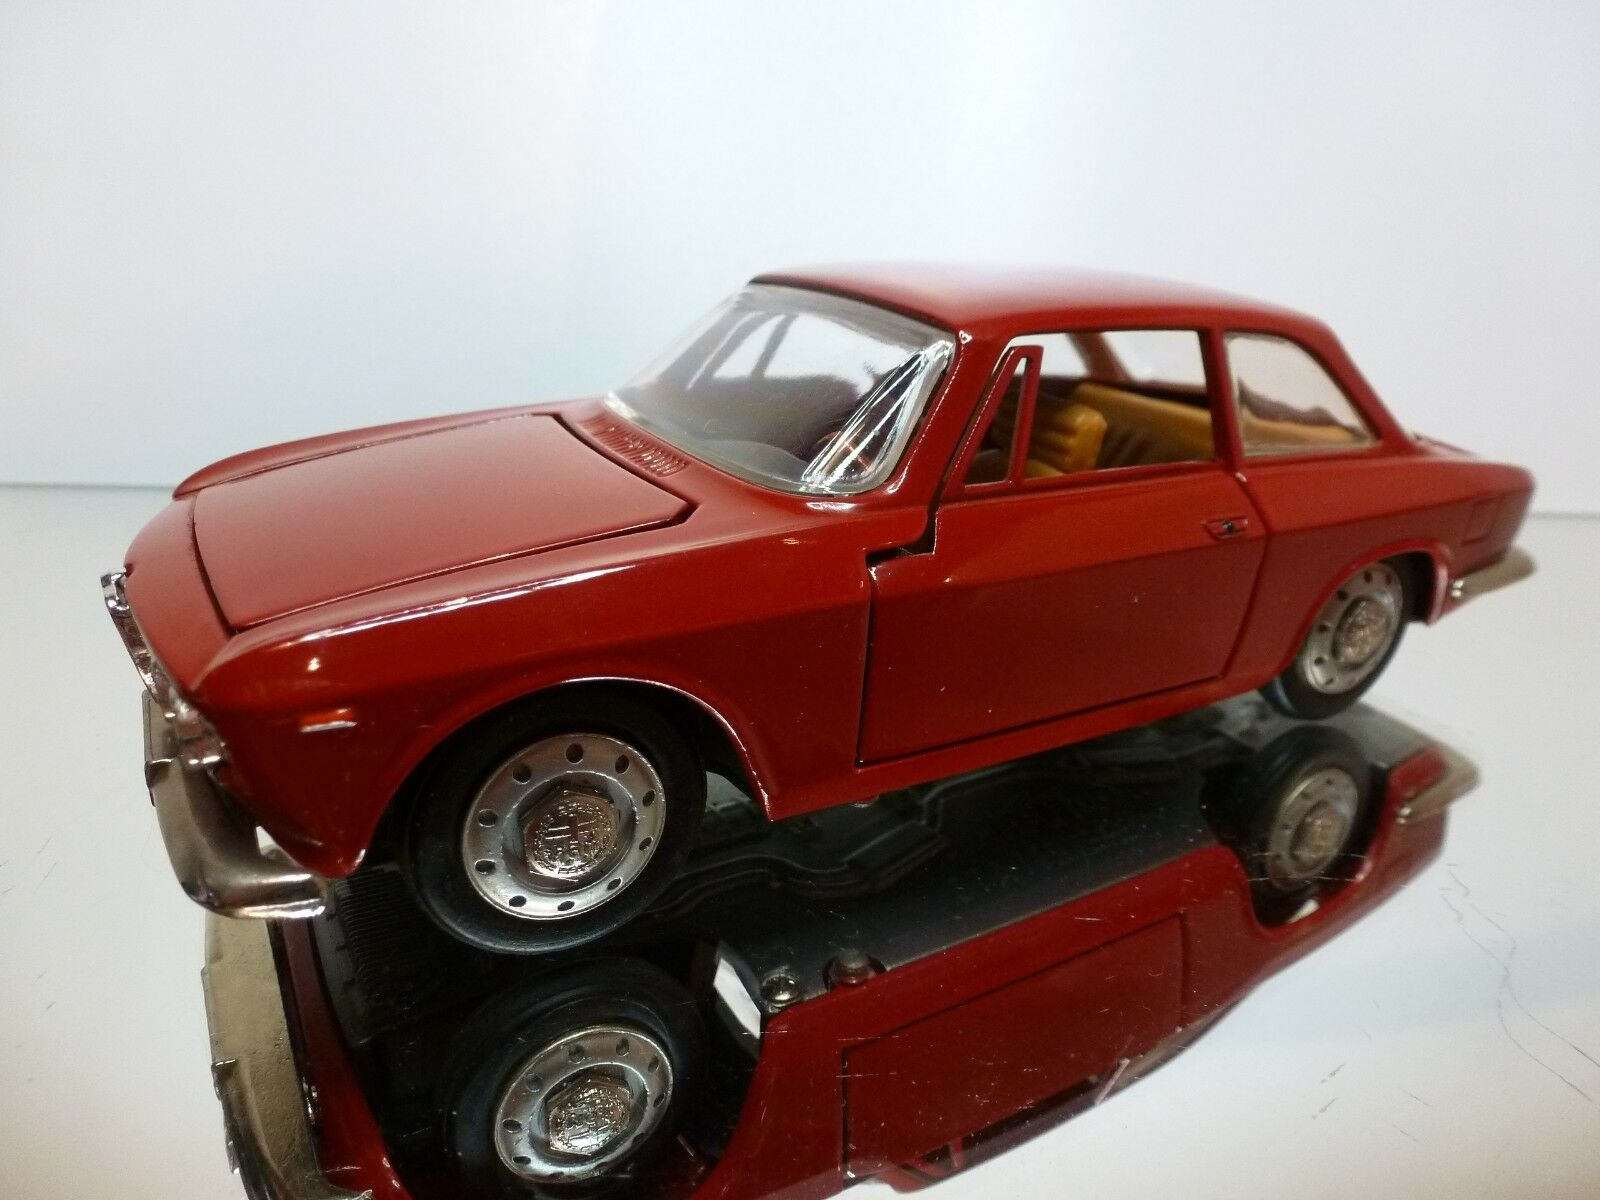 TOGI ALFA ROMEO  GIULIA GT SPRINT - rouge 1 23 - EXCELLENT CONDITION  prix bas 40%